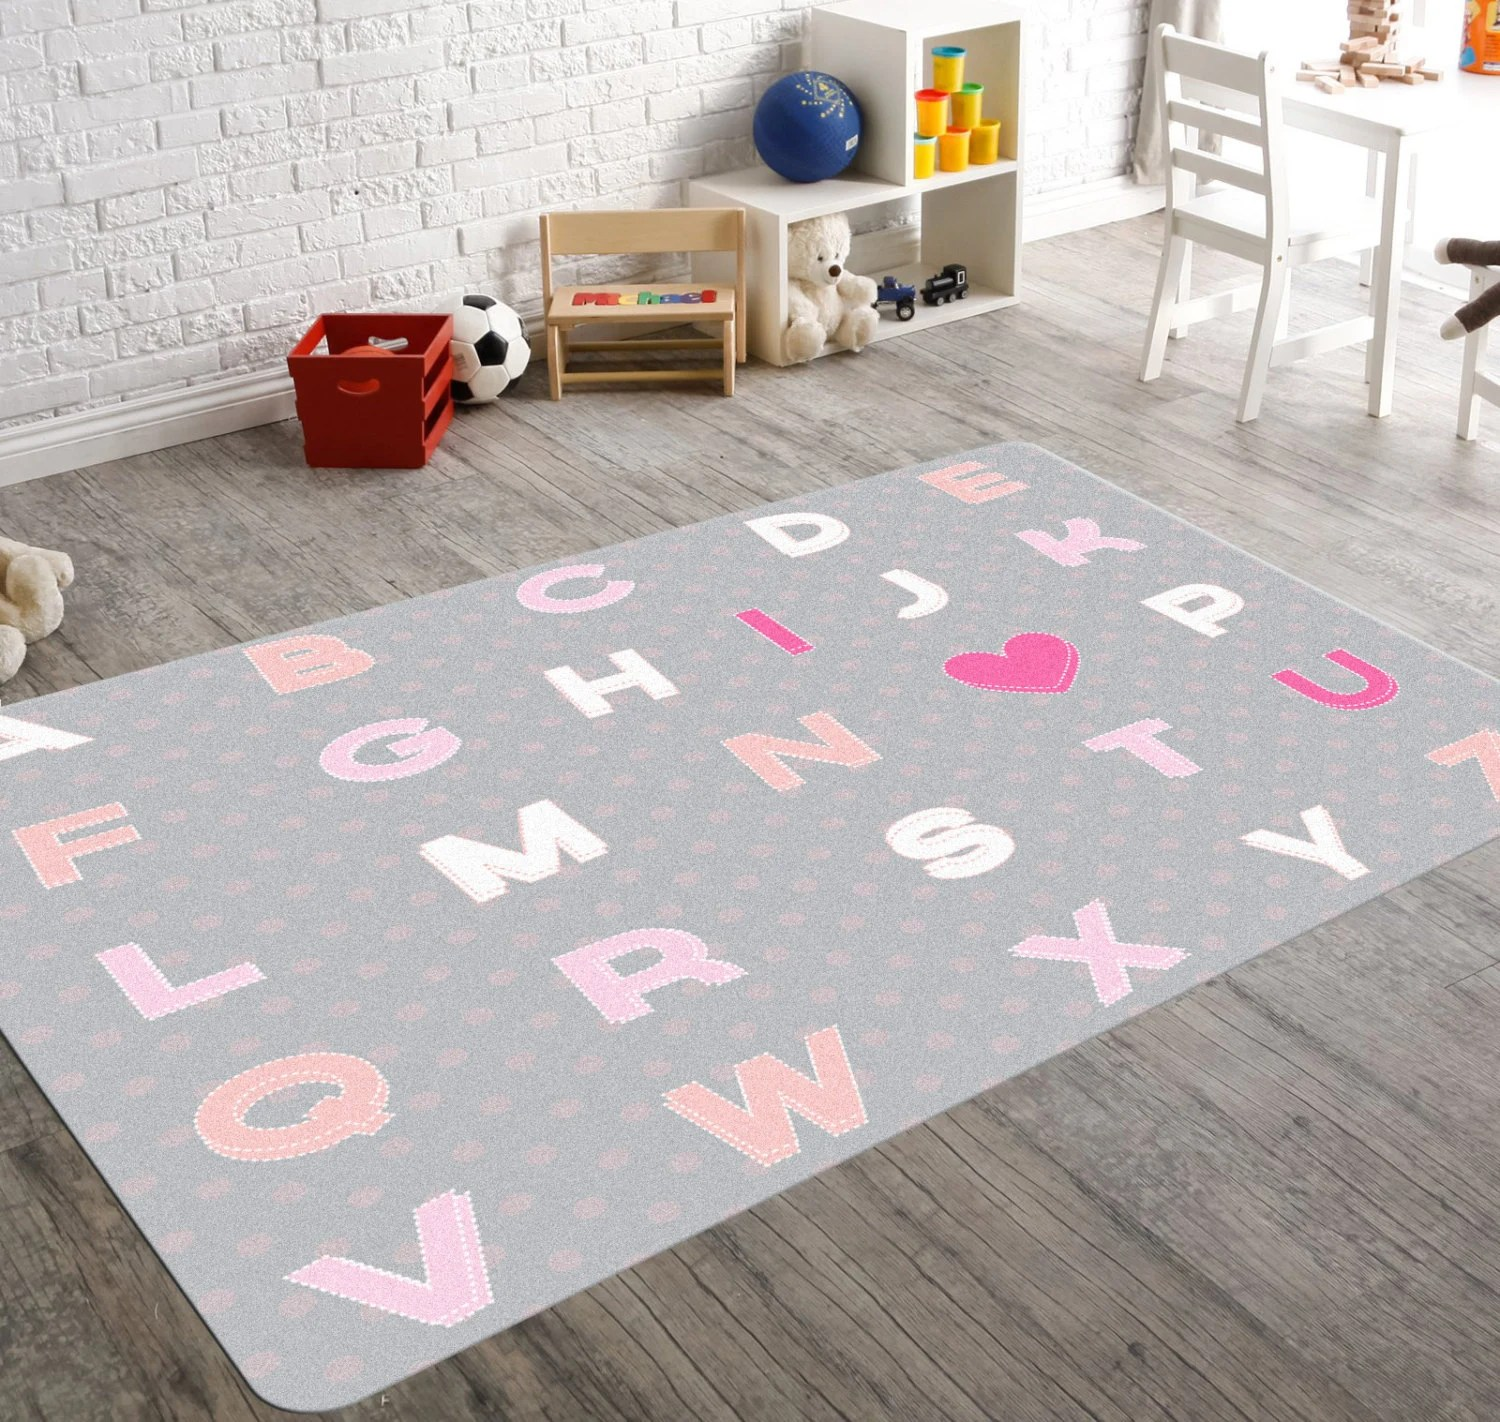 Baby Rugs For Nursery Room Alphabet Nursery Nursery Rug Kids Rug Pink Nursery Rug